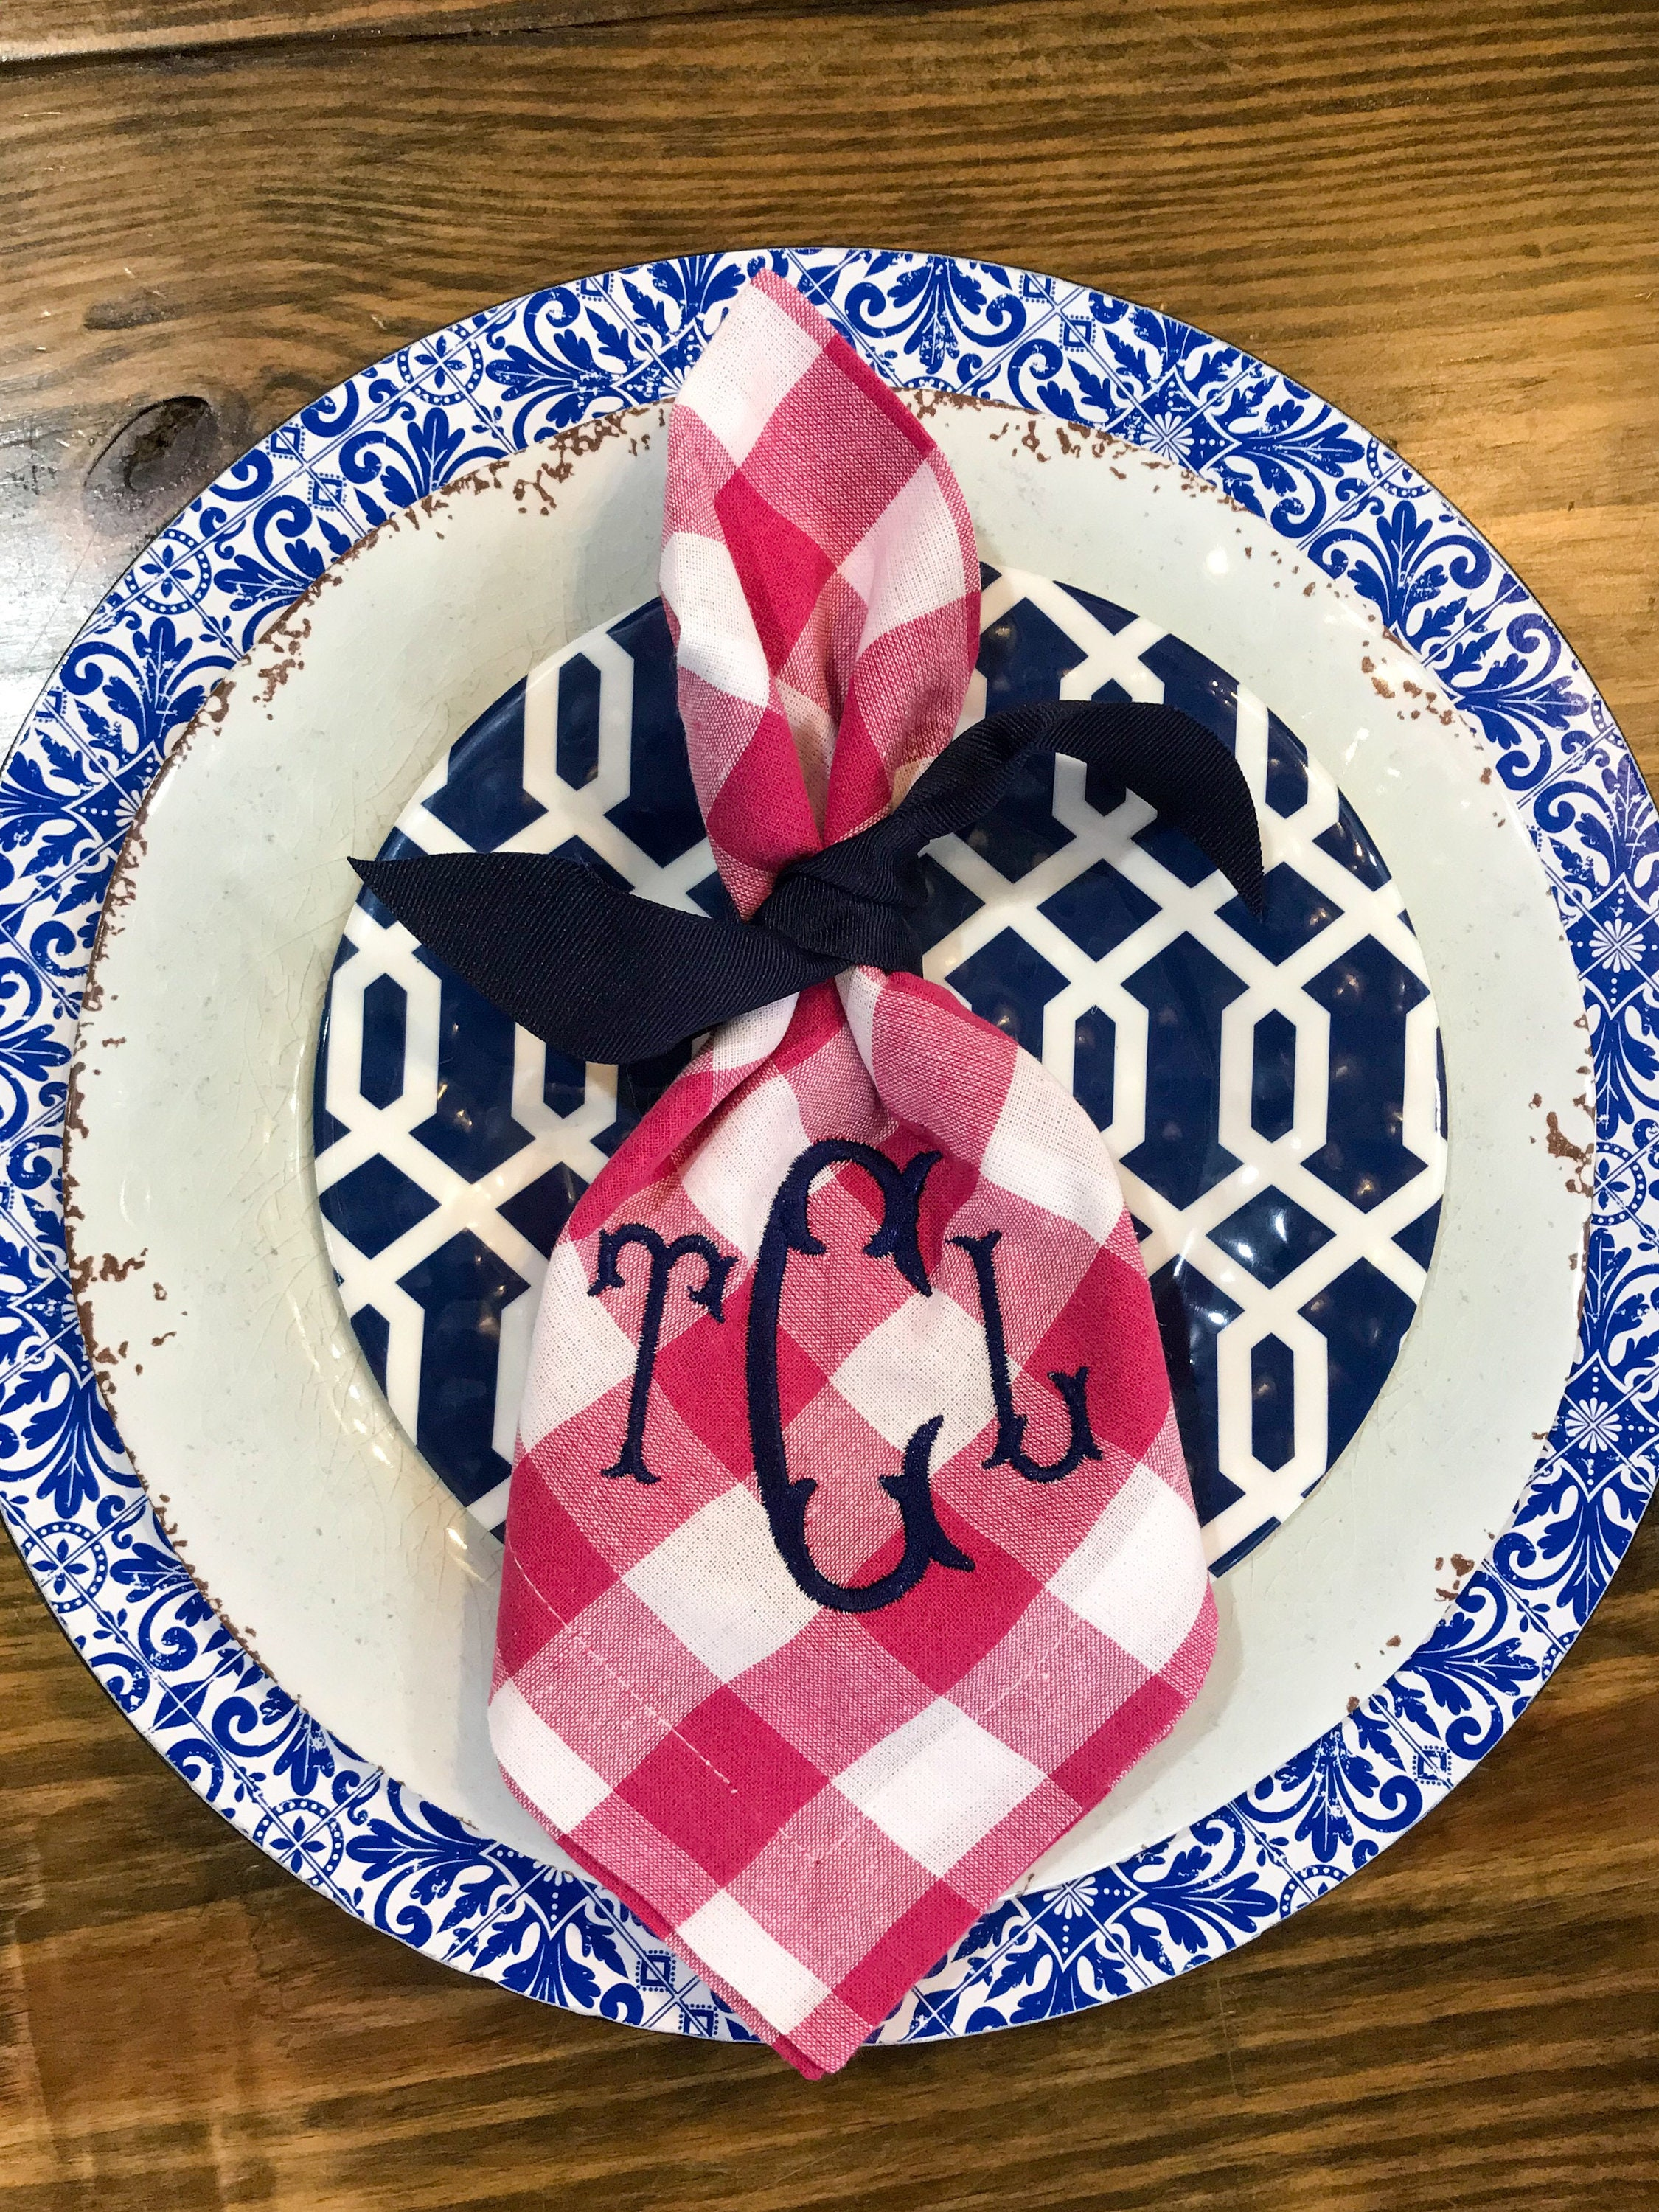 Monogrammed Gingham Napkins Personalized Linens Monogrammed Table Linens Cotton Embroidered Napkins Table Linens Monogram Napkins